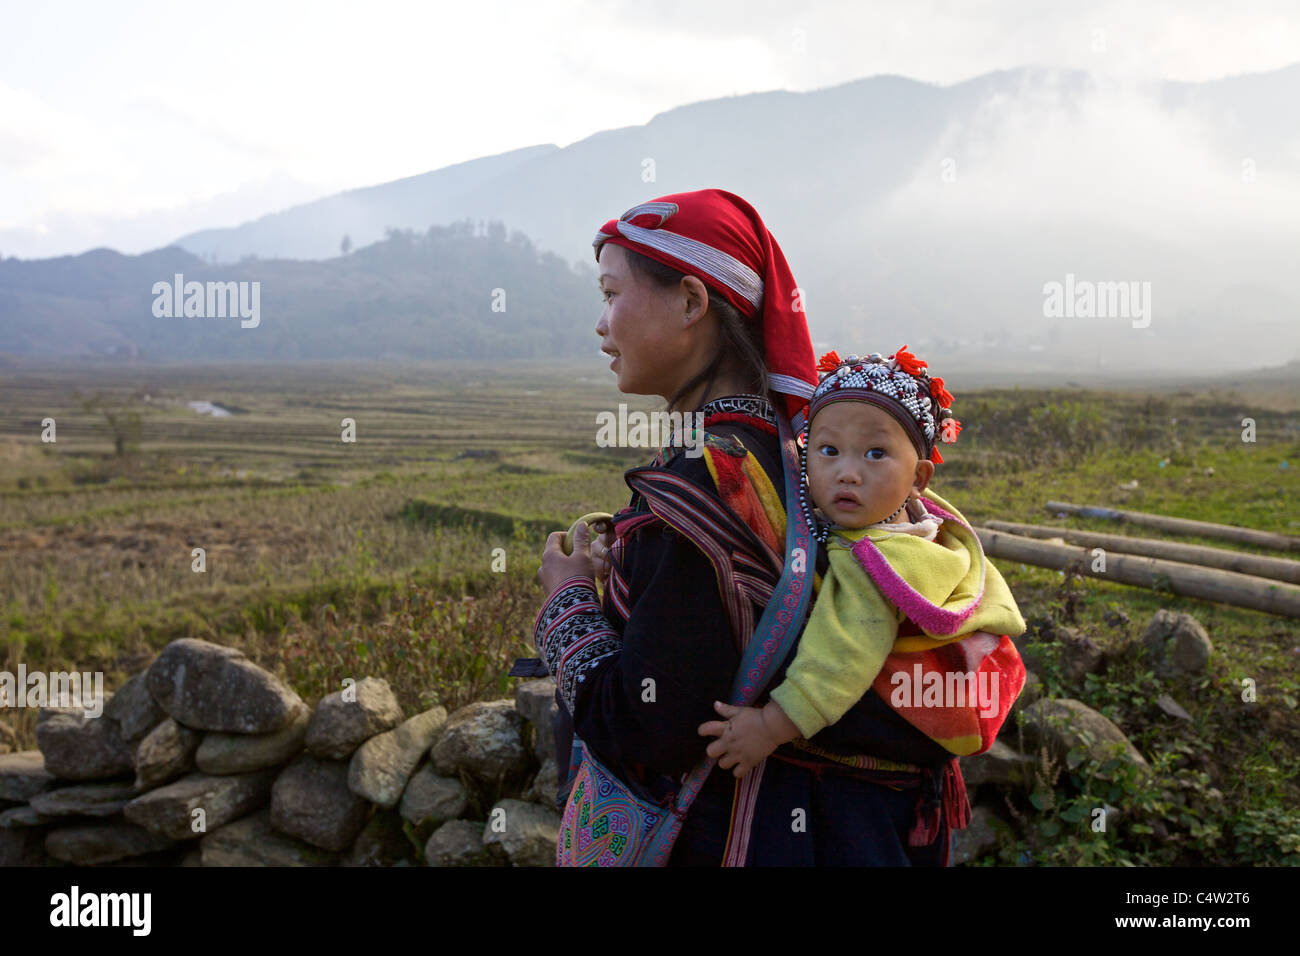 Unidentified young girl from the Red Dao Ethnic Minority people carries a baby on November 22, 2010 in Sapa, Vietnam. - Stock Image